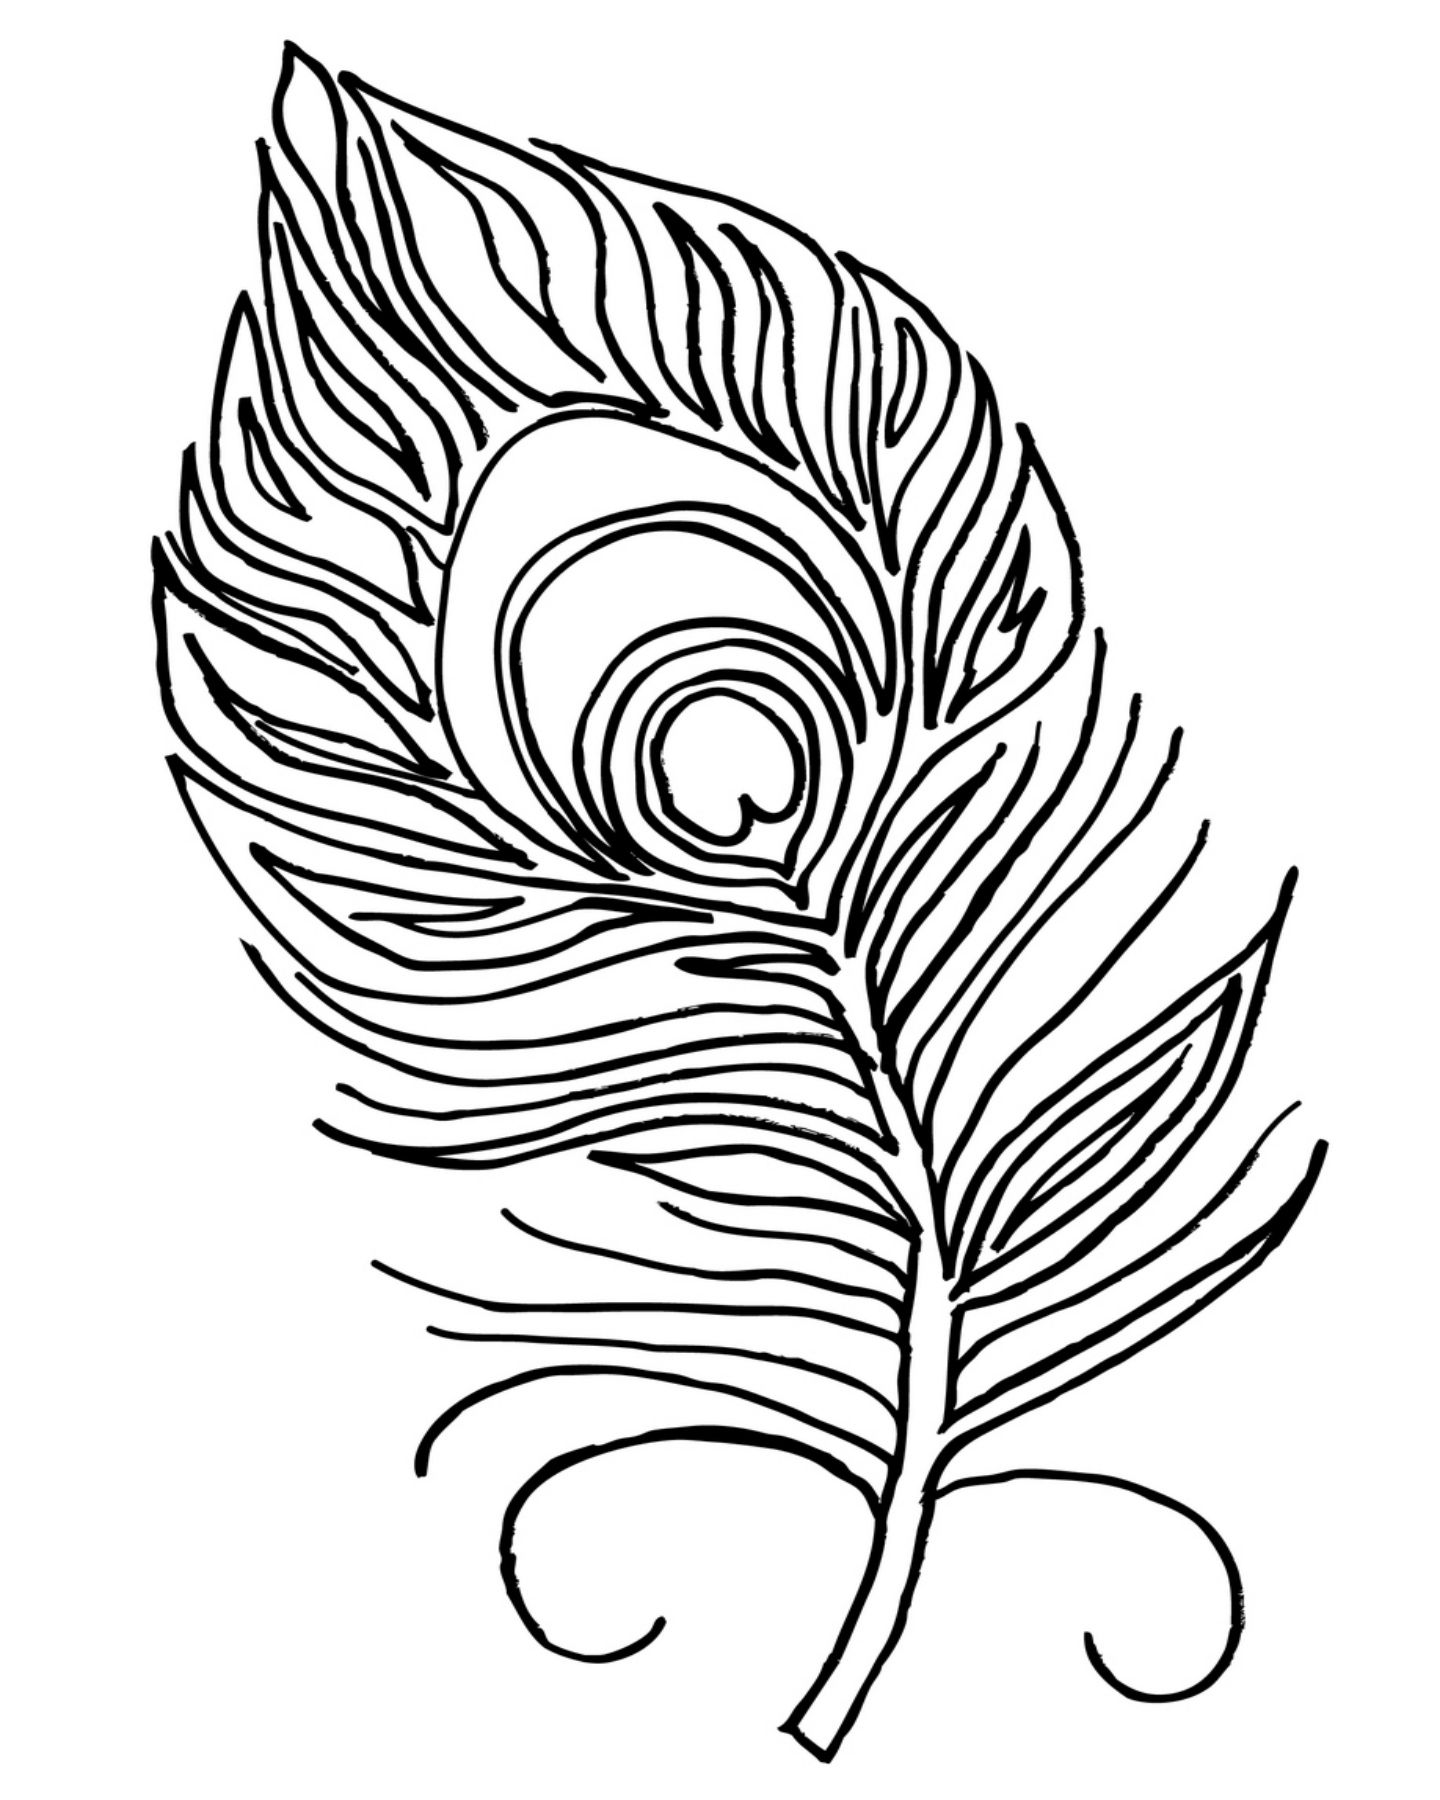 1440x1800 Peacock Feather Coloring Page Printables Peacock